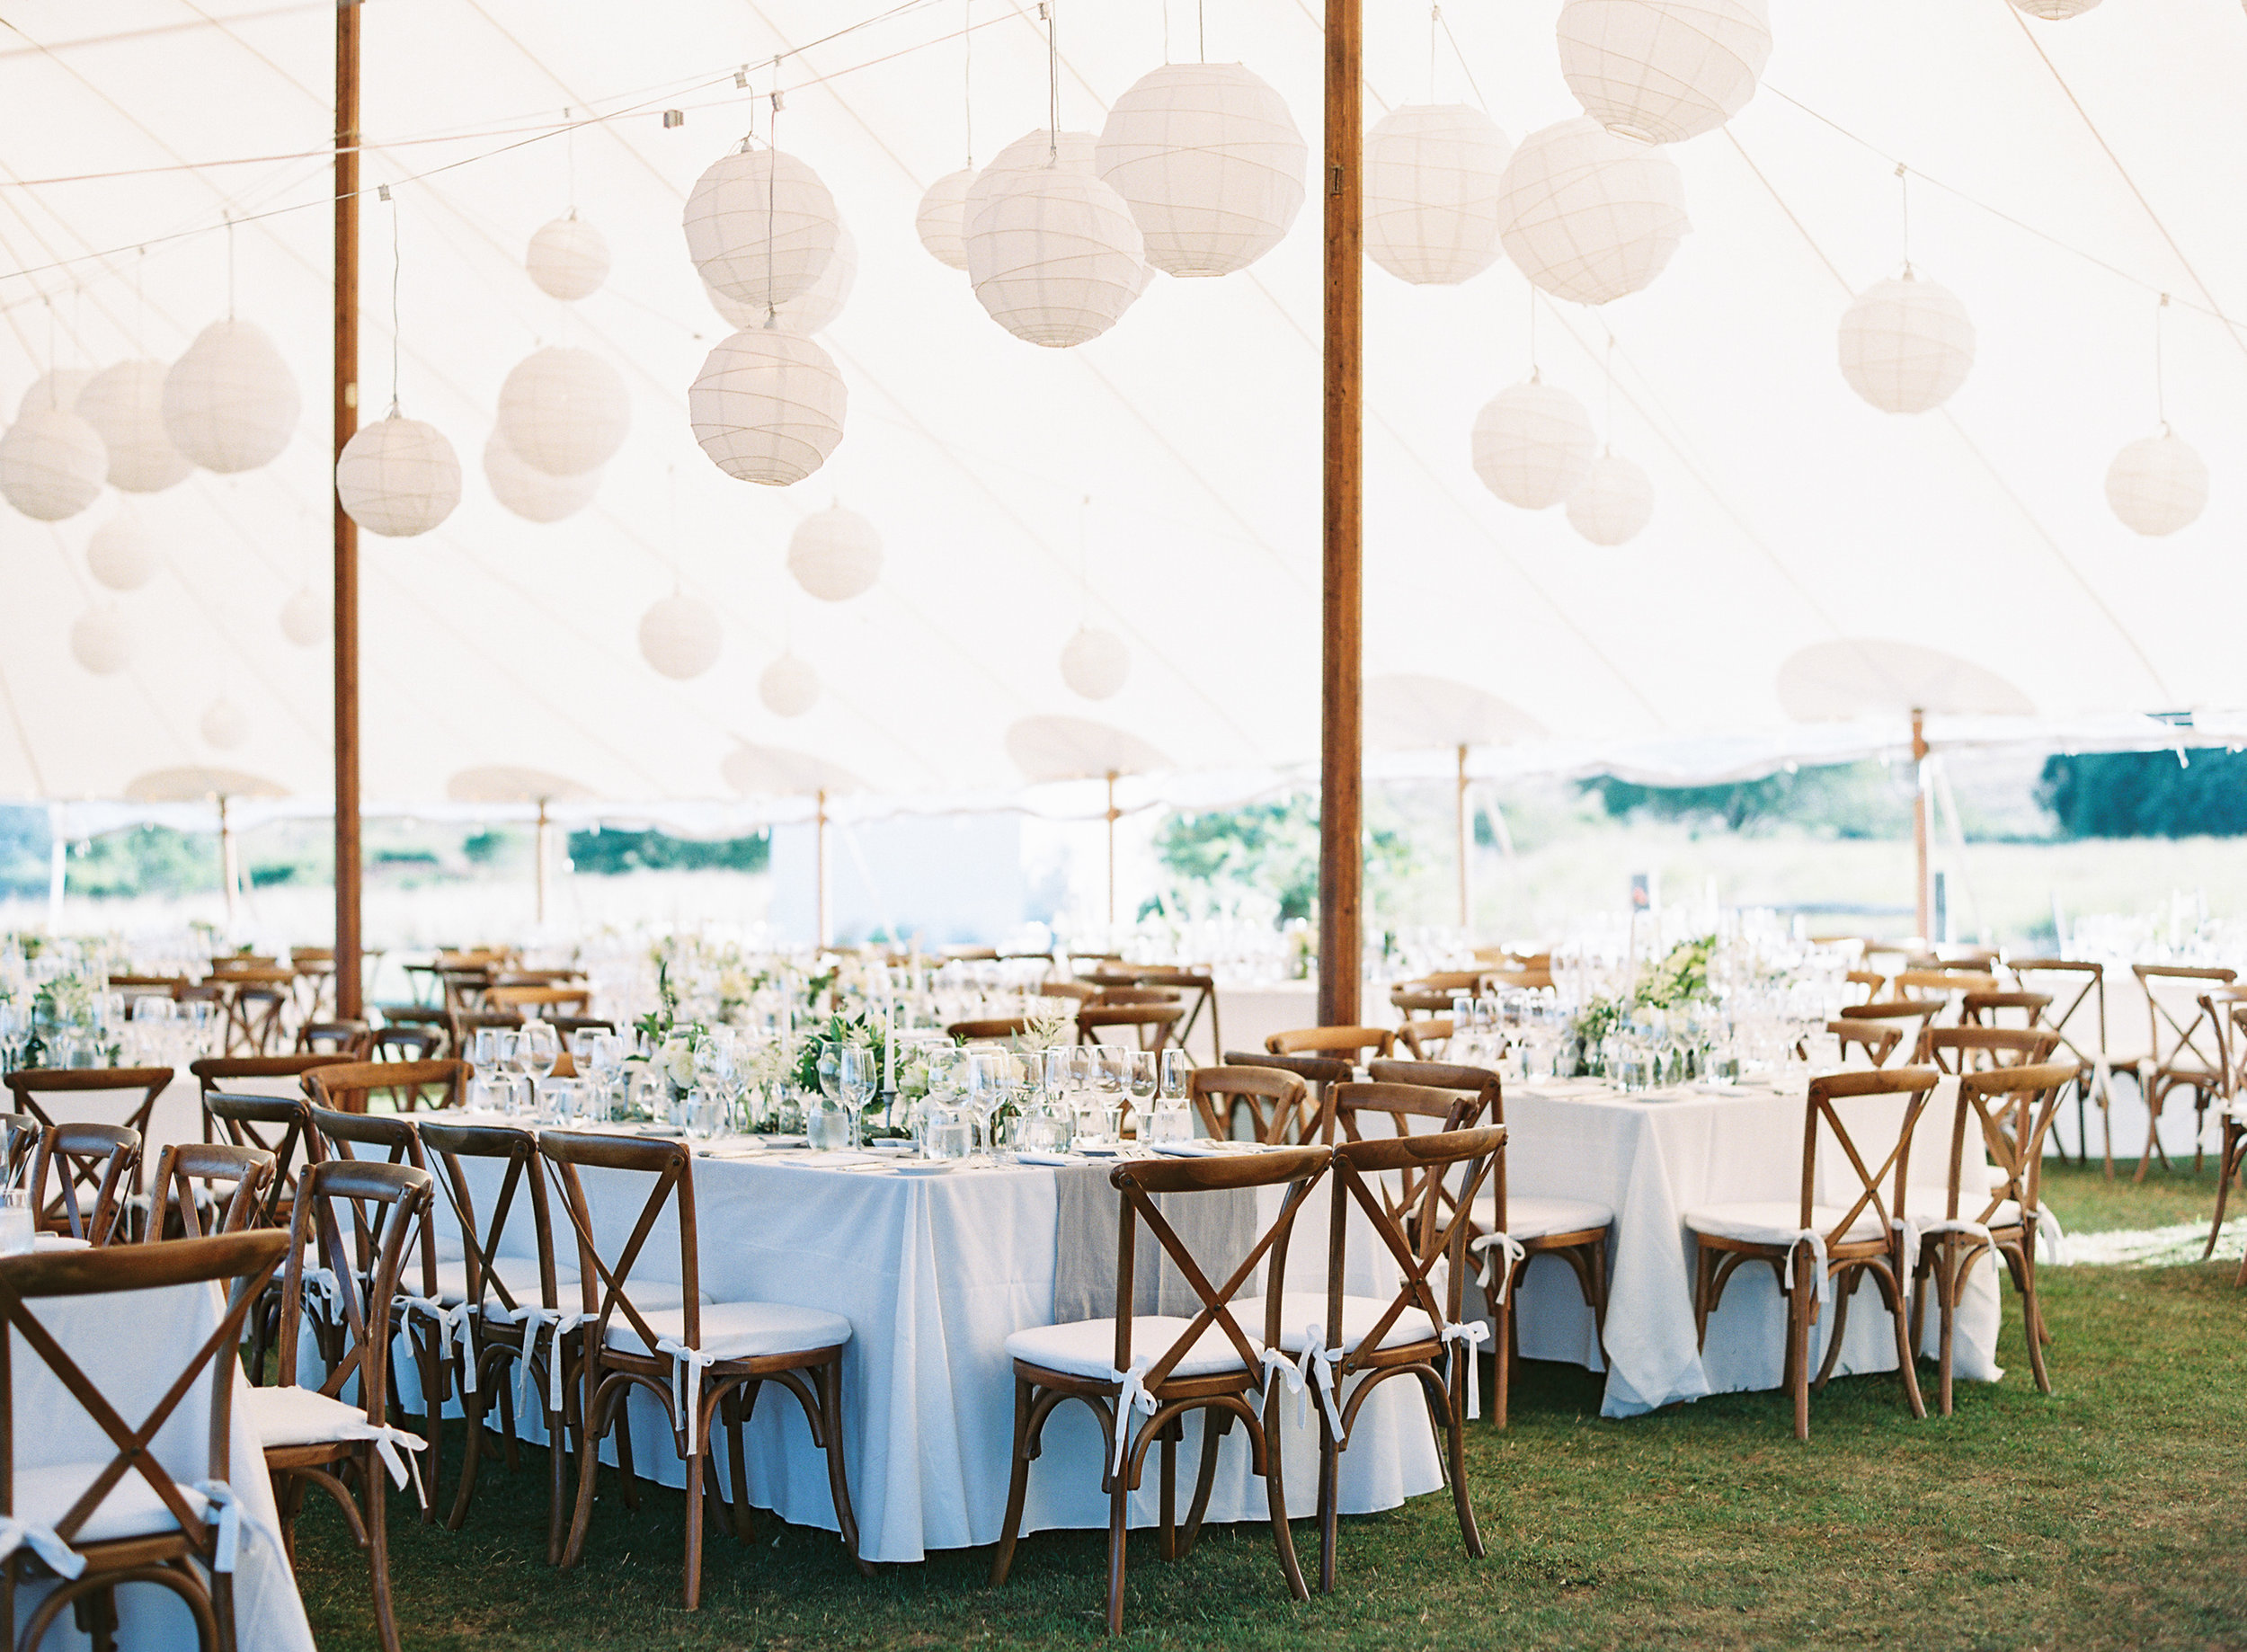 Marthas-Vineyard-Wedding-on-Martha-Stewart-708.jpg